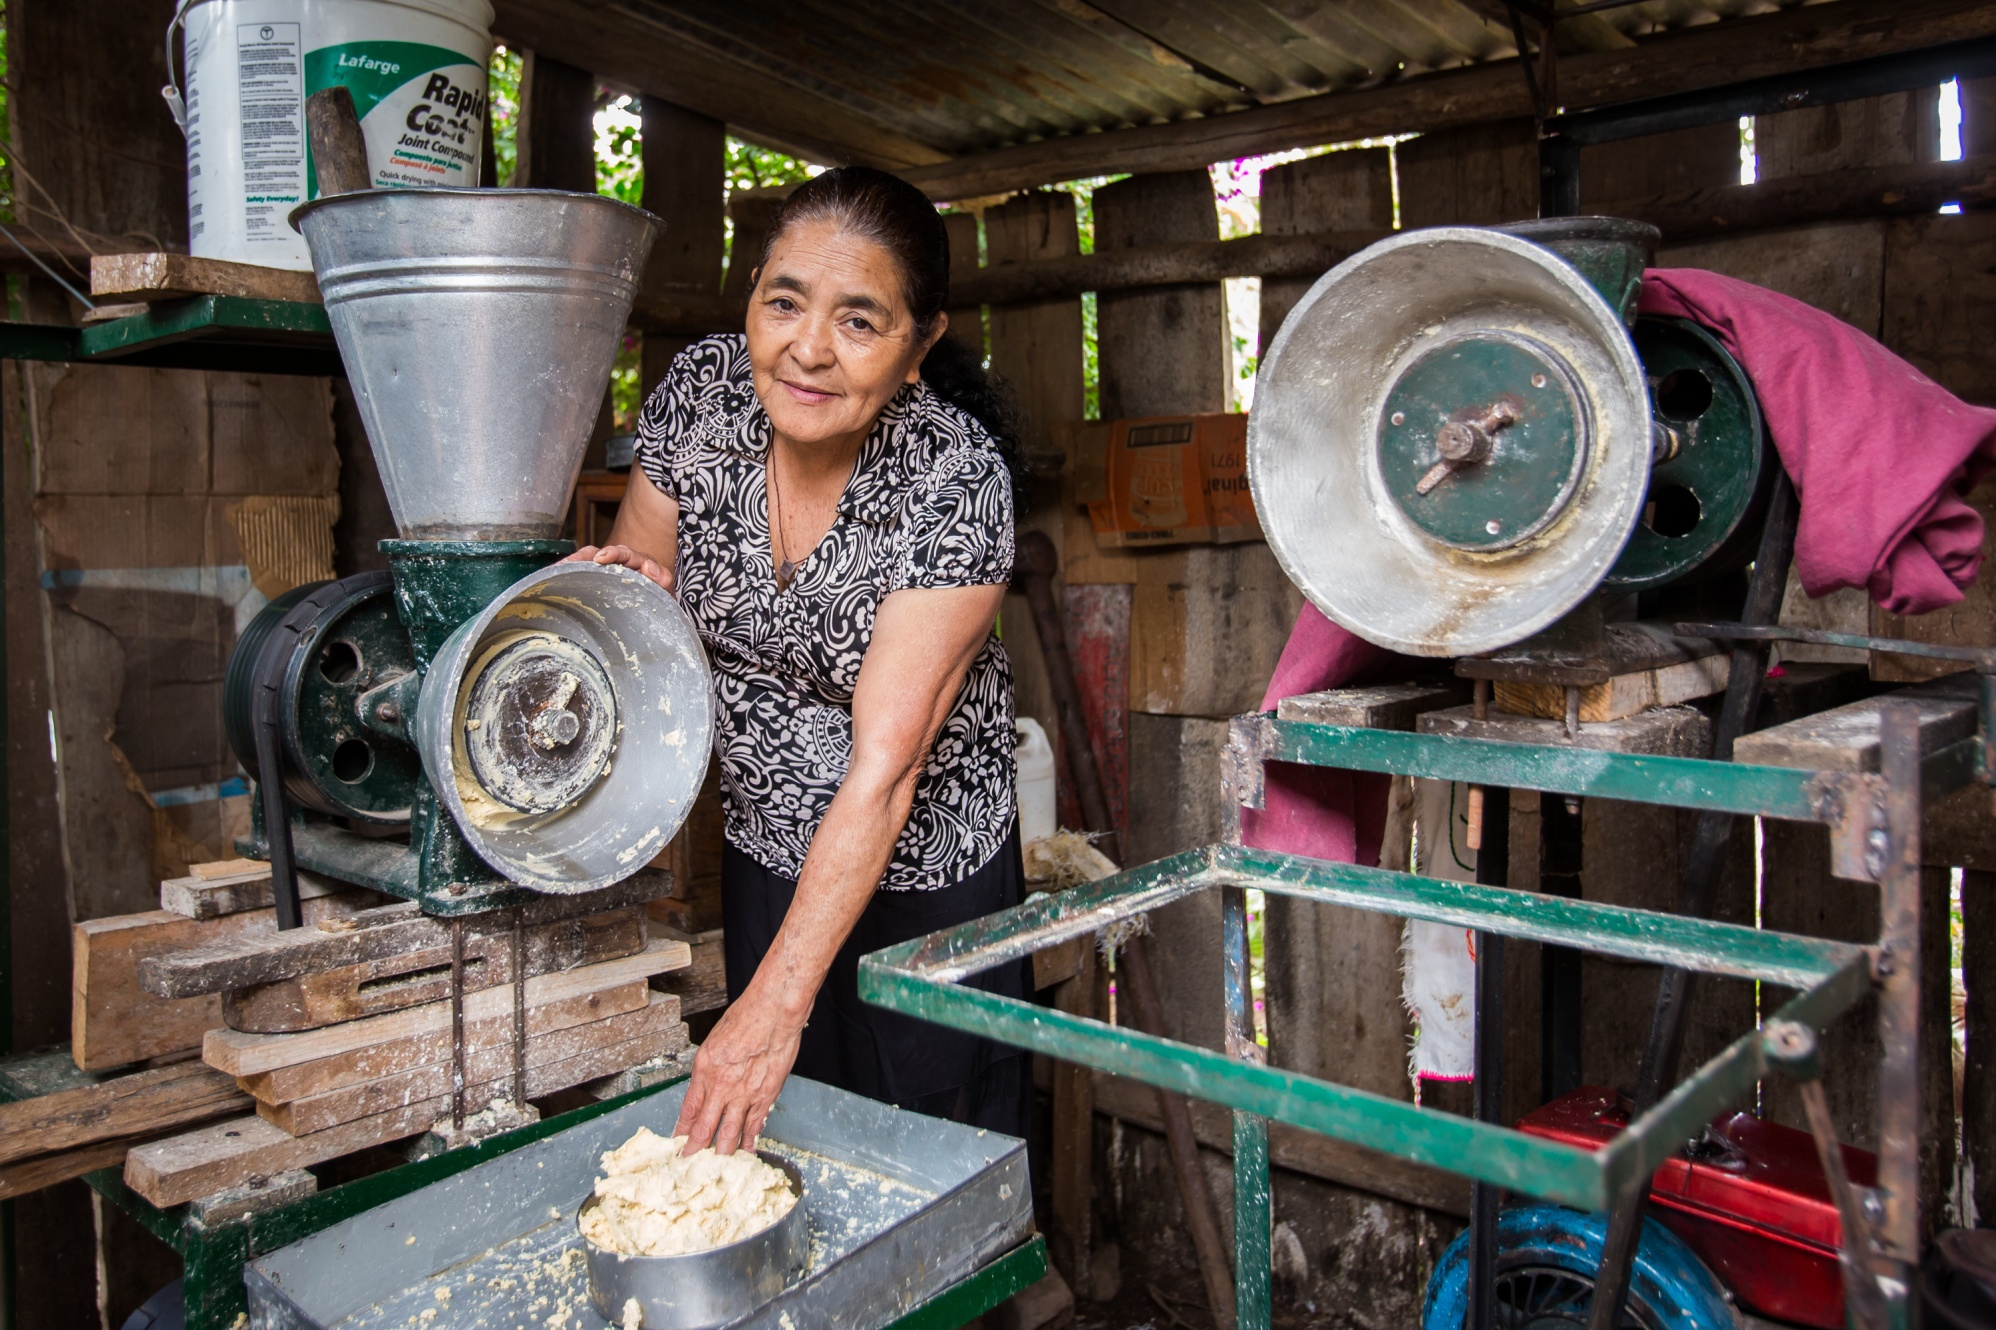 Maria Higinia Reyes mills corn in Zacate Blanco, Honduras. She takes part in an Adelante Foundation program supported by a Rotary global grant, in which women in rural Honduras get group borrowing opportunities and business training aimed at increasing their household incomes.